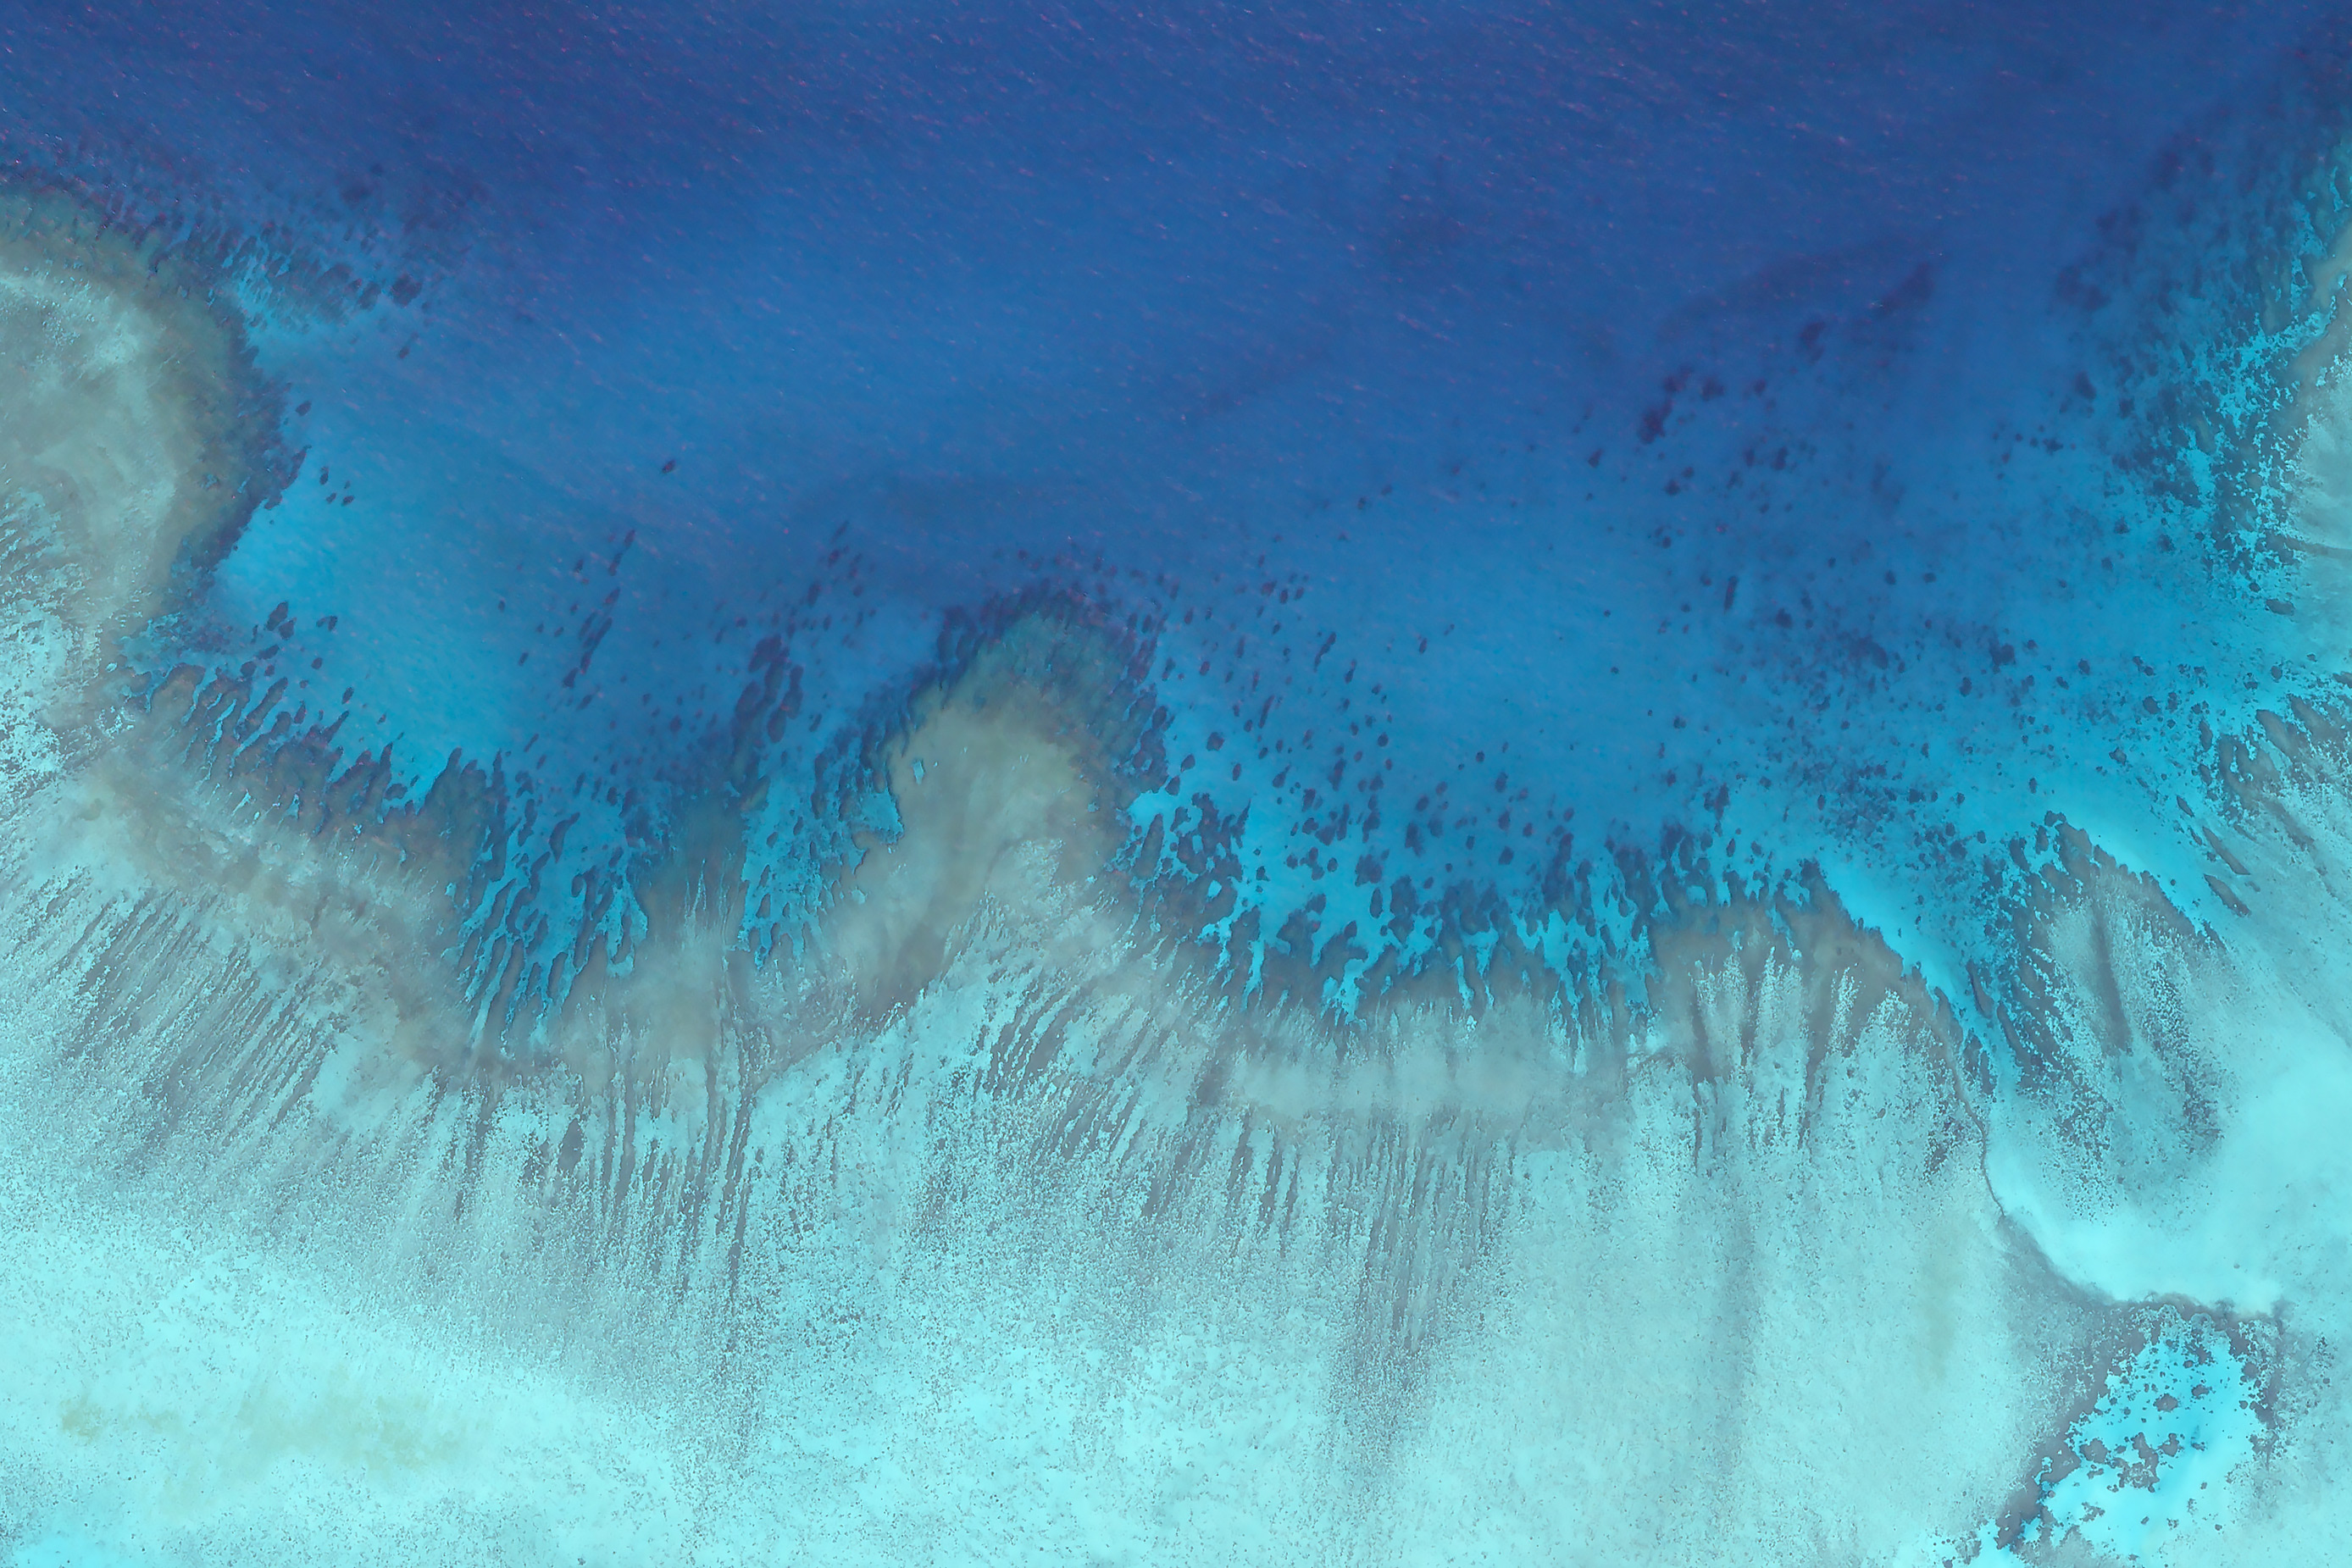 """Planet satellite image of Heron Island. """"We need to know what is occurring in this hidden world of shallow coral reefs if we  have any hope to save them,"""" said Art Min, vice president of impact for Paul Allen Philanthropies, in a statement. """"Coral reefs cover less than 1 percent of the ocean surface and yet nearly 1 billion people and 25 percent of all marine life depend on them."""""""